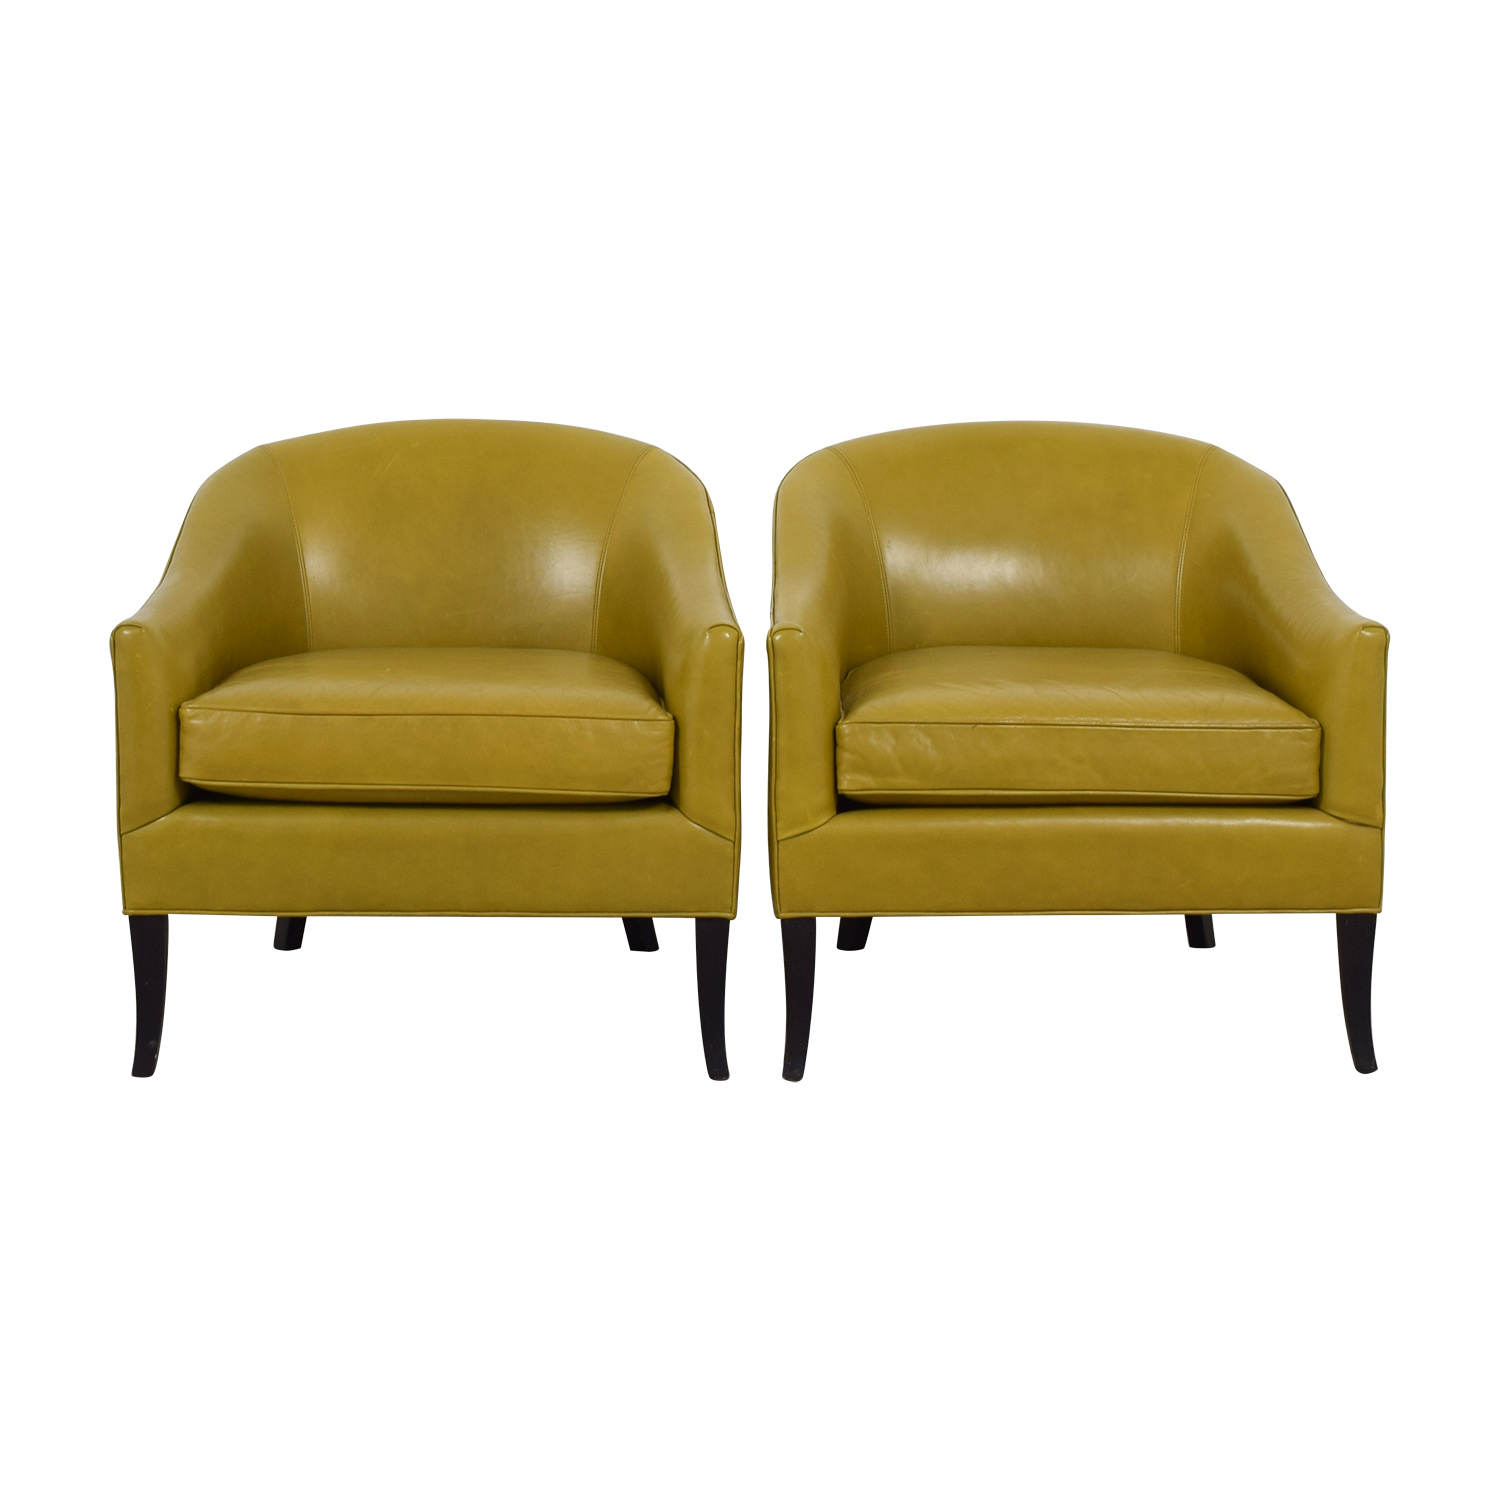 Crate and Barrel Crate and Barrel Lemon Green Leather Side Chairs coupon